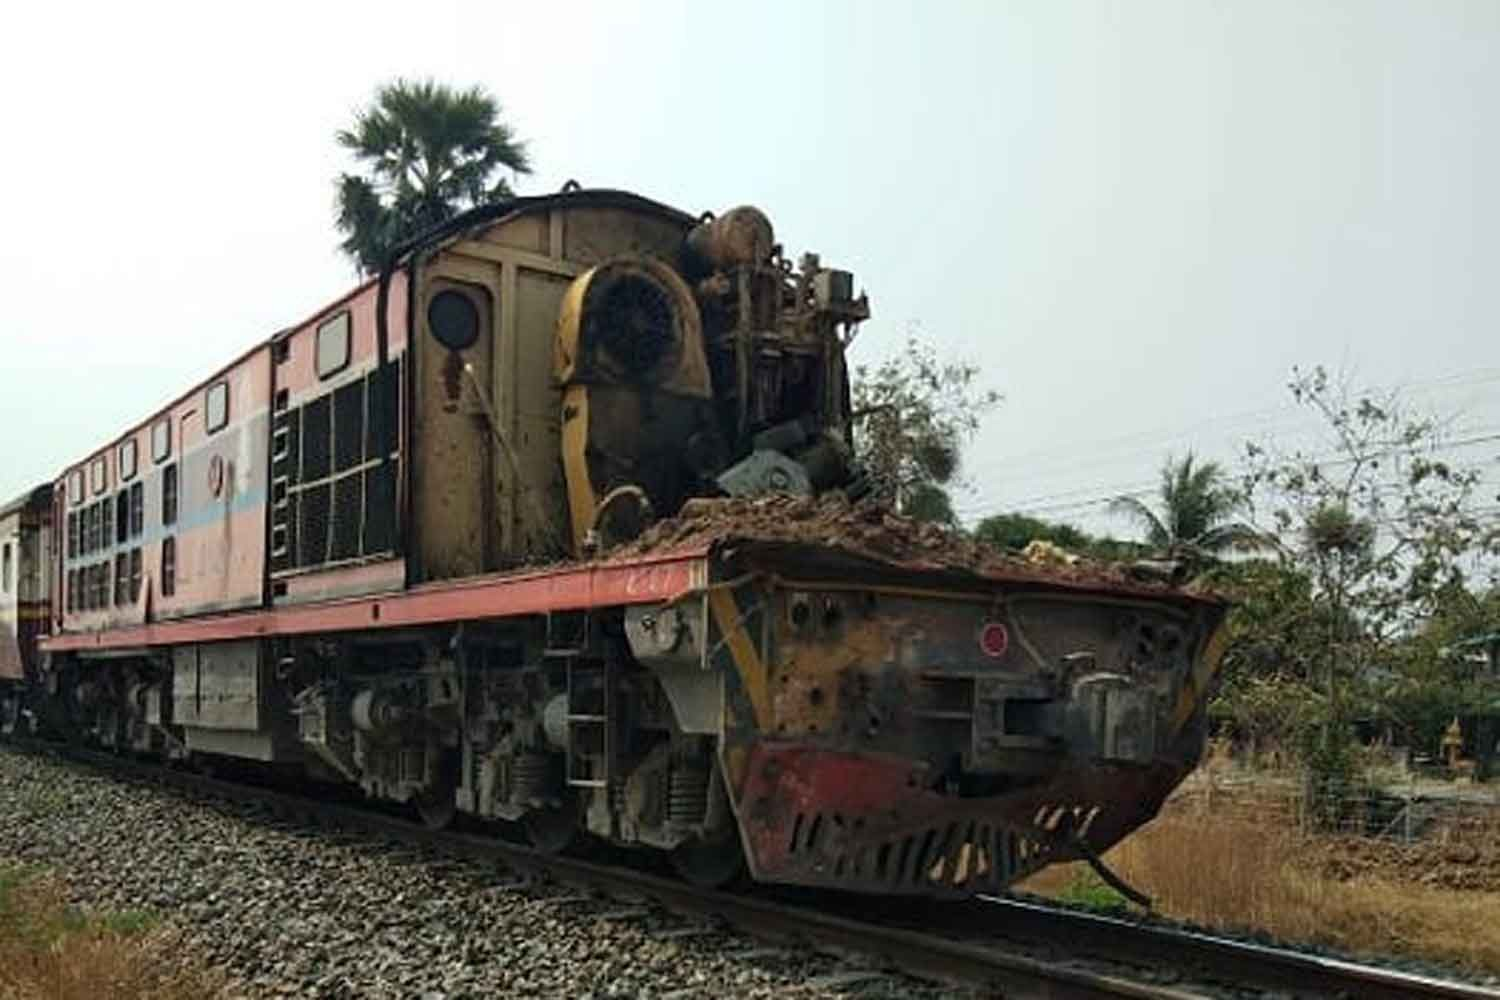 The front of this locomotive pulling a Bangkok-Denchai train was torn off when it hit a trailer truck on a railway crossing in Nakhon Sawan on Monday. The train driver suffered a head wound and the engineer minor injuries. The truck driver escaped serious hurt. (Photo: Chalit Poomruang)